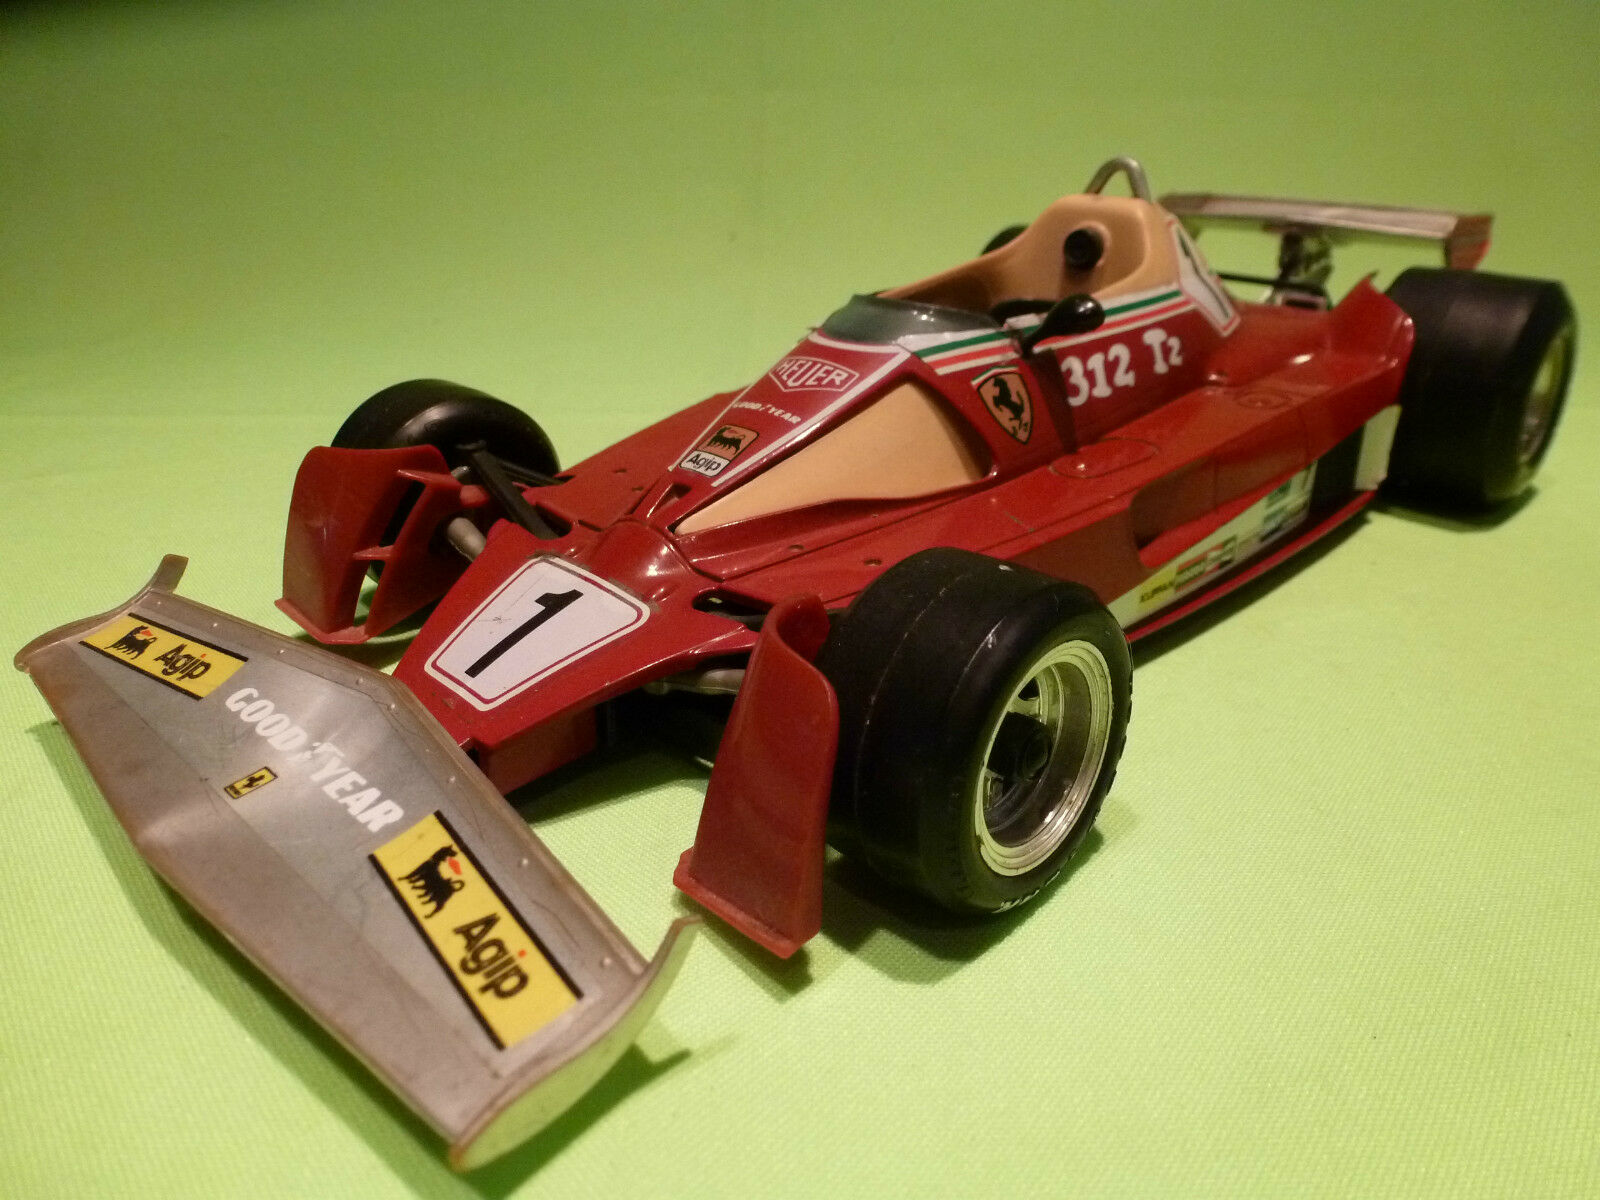 BBURAGO 1 14  FERRARI 312 T2   - WORLD CHAMPION   2101  - IN GOOD CONDITION